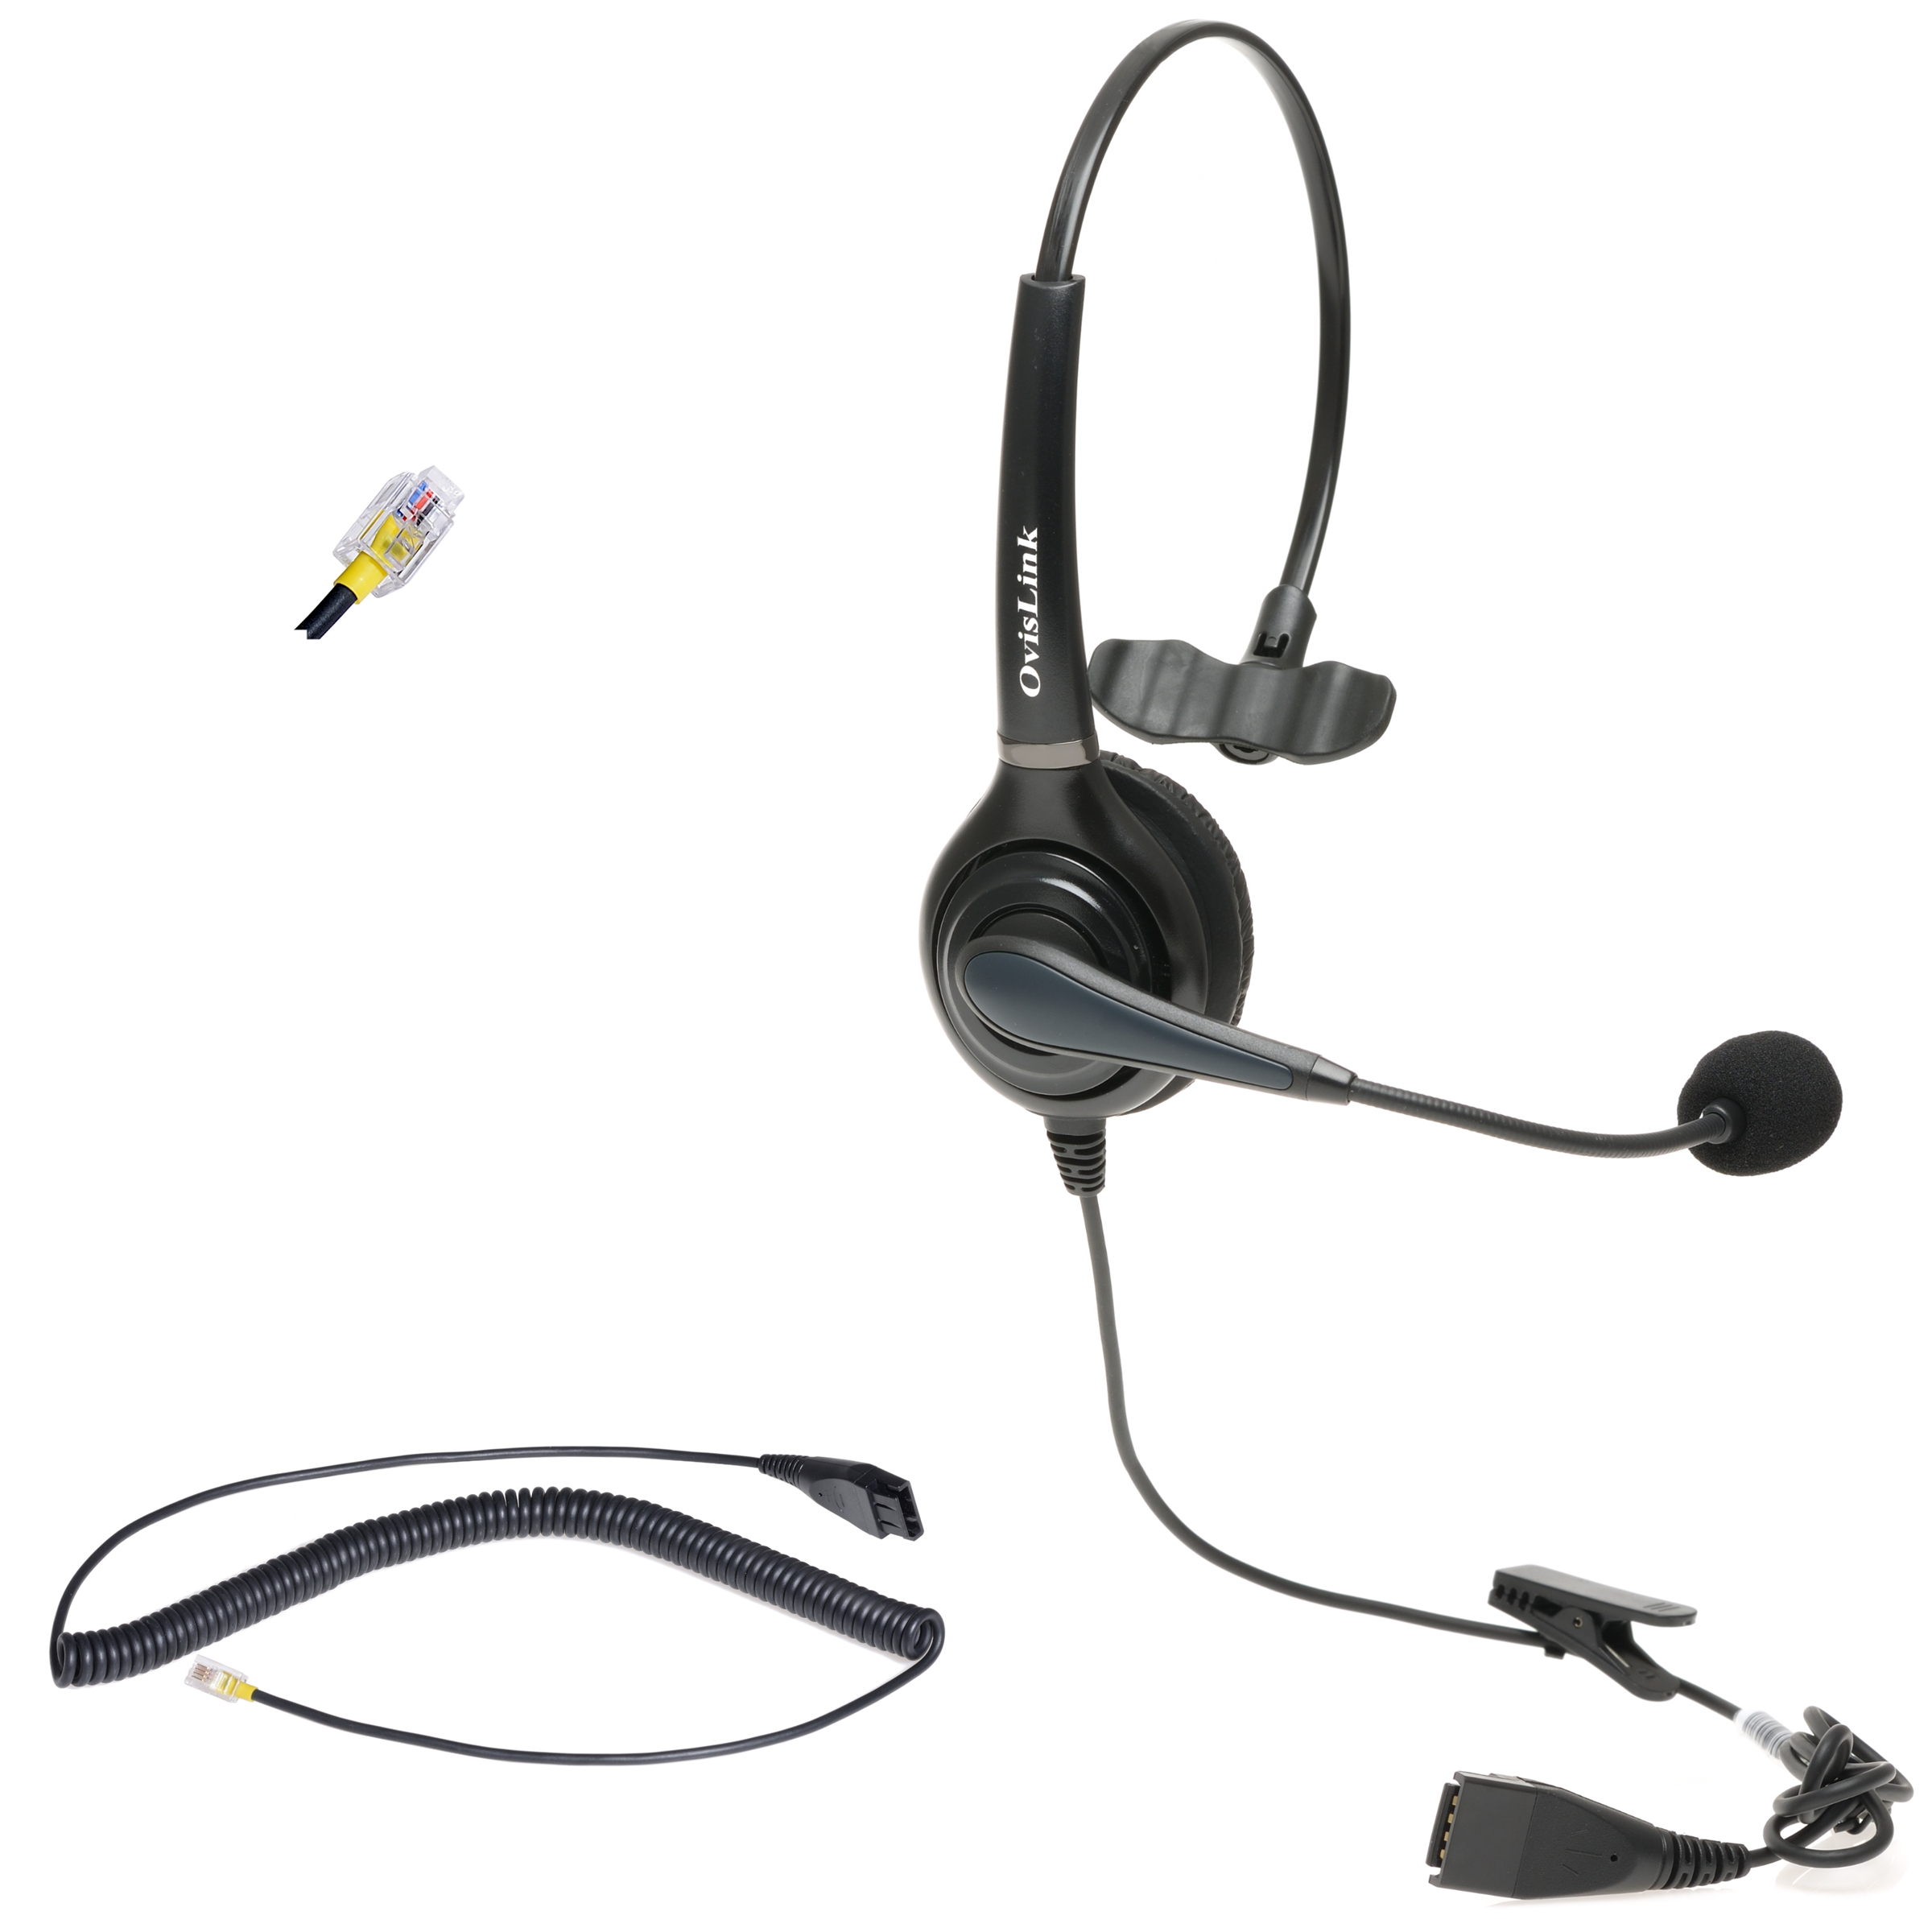 Cisco Unified IP Phone Headset